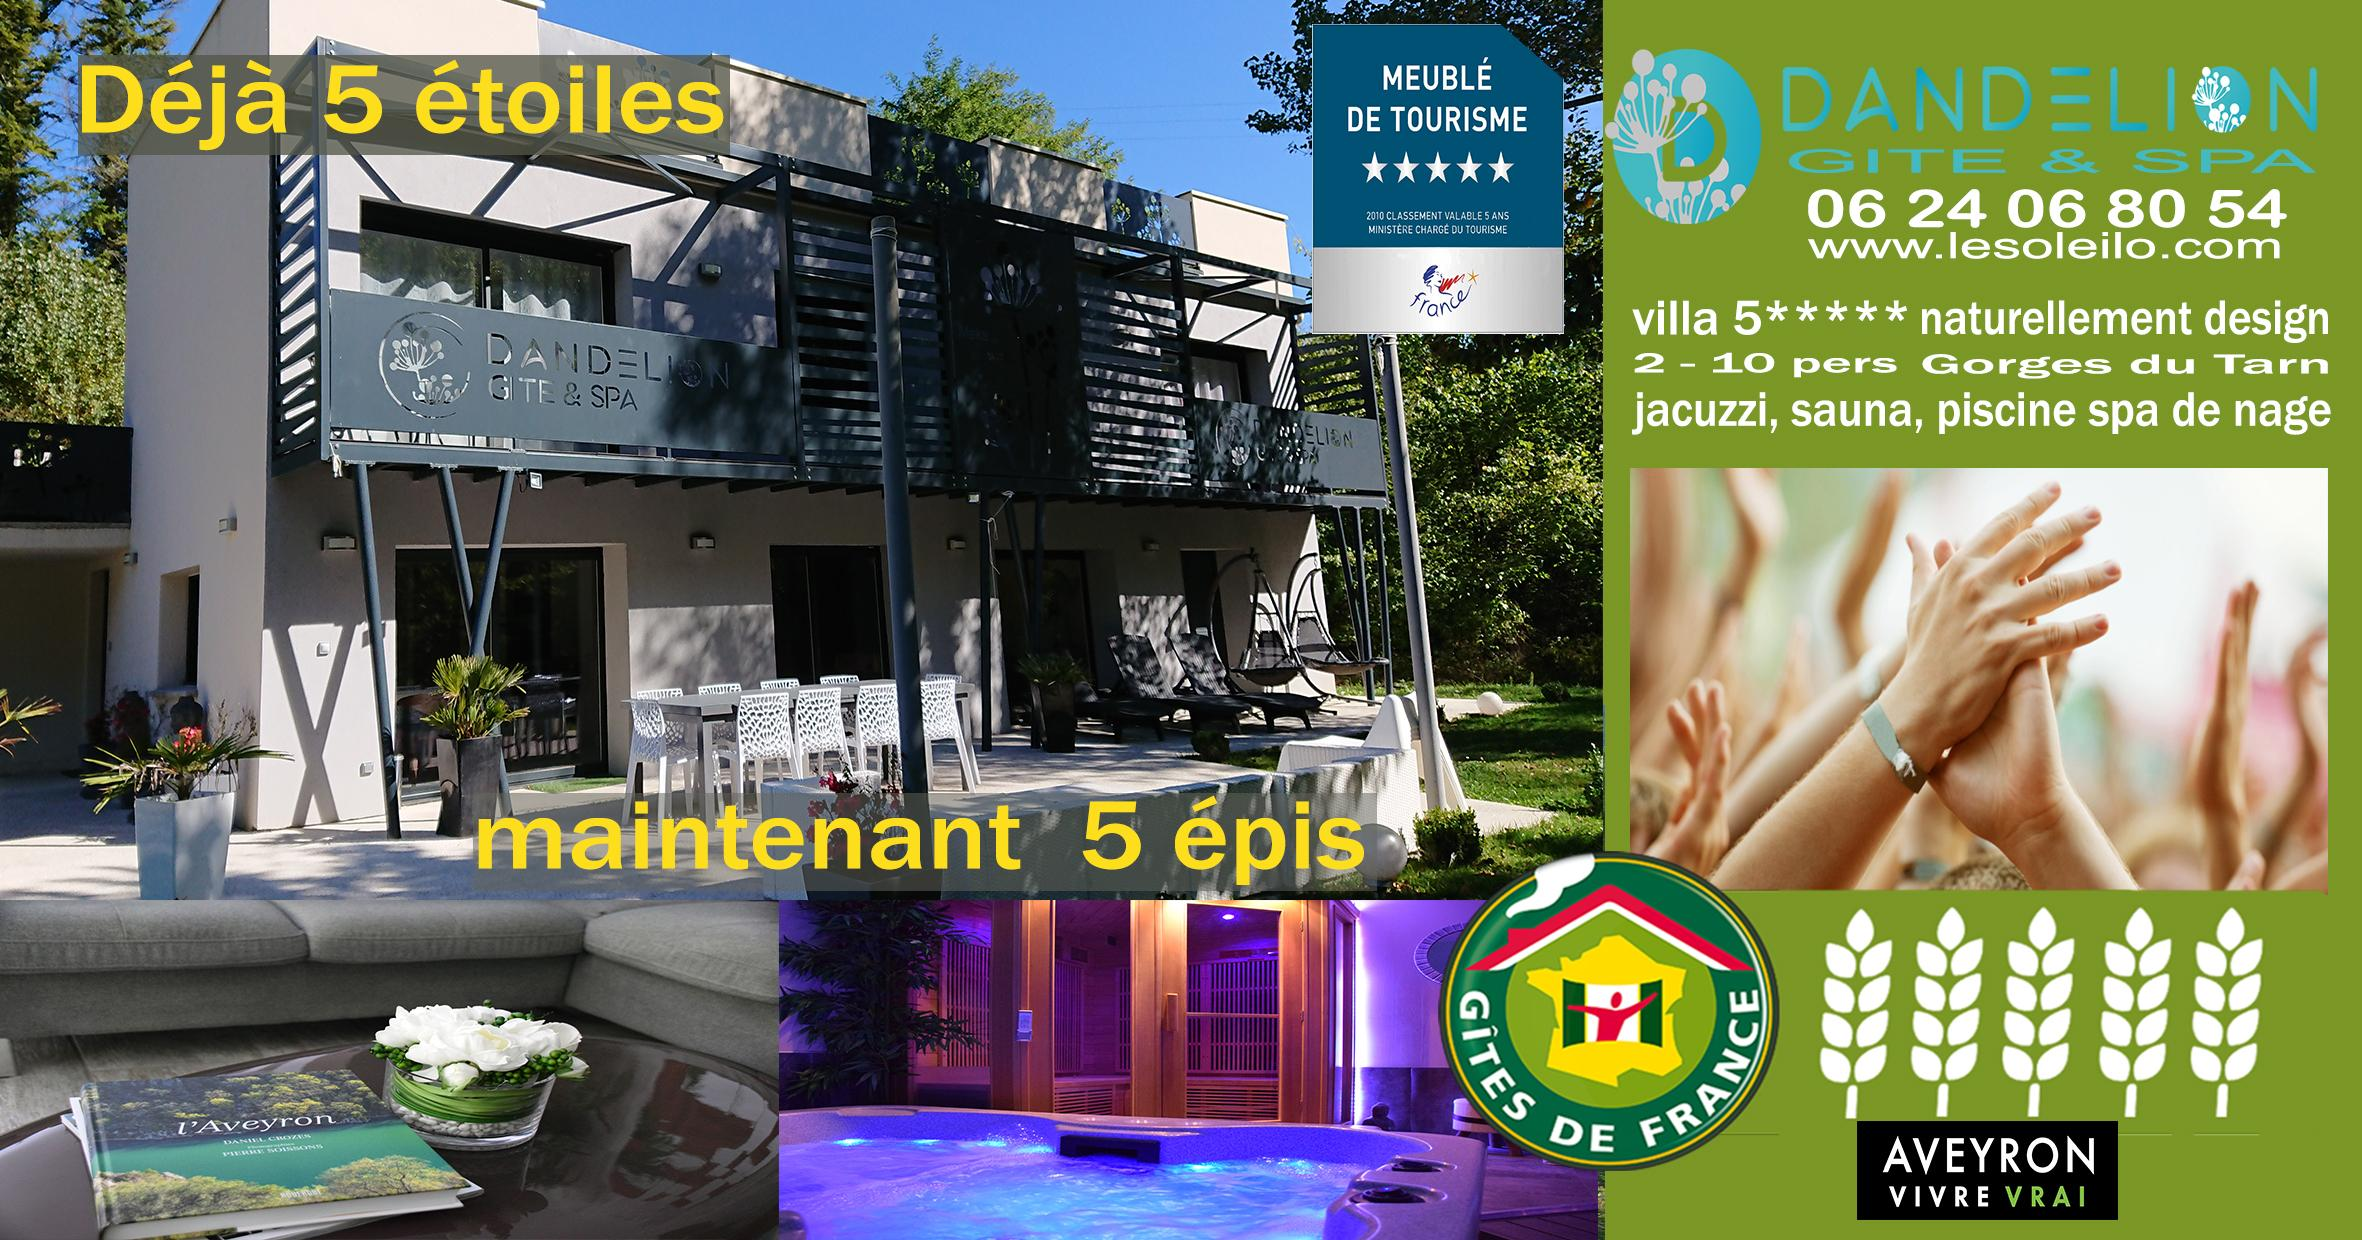 Gite de France grants the 5-ear label to the Dandelion cottage guarantees comfort and quality